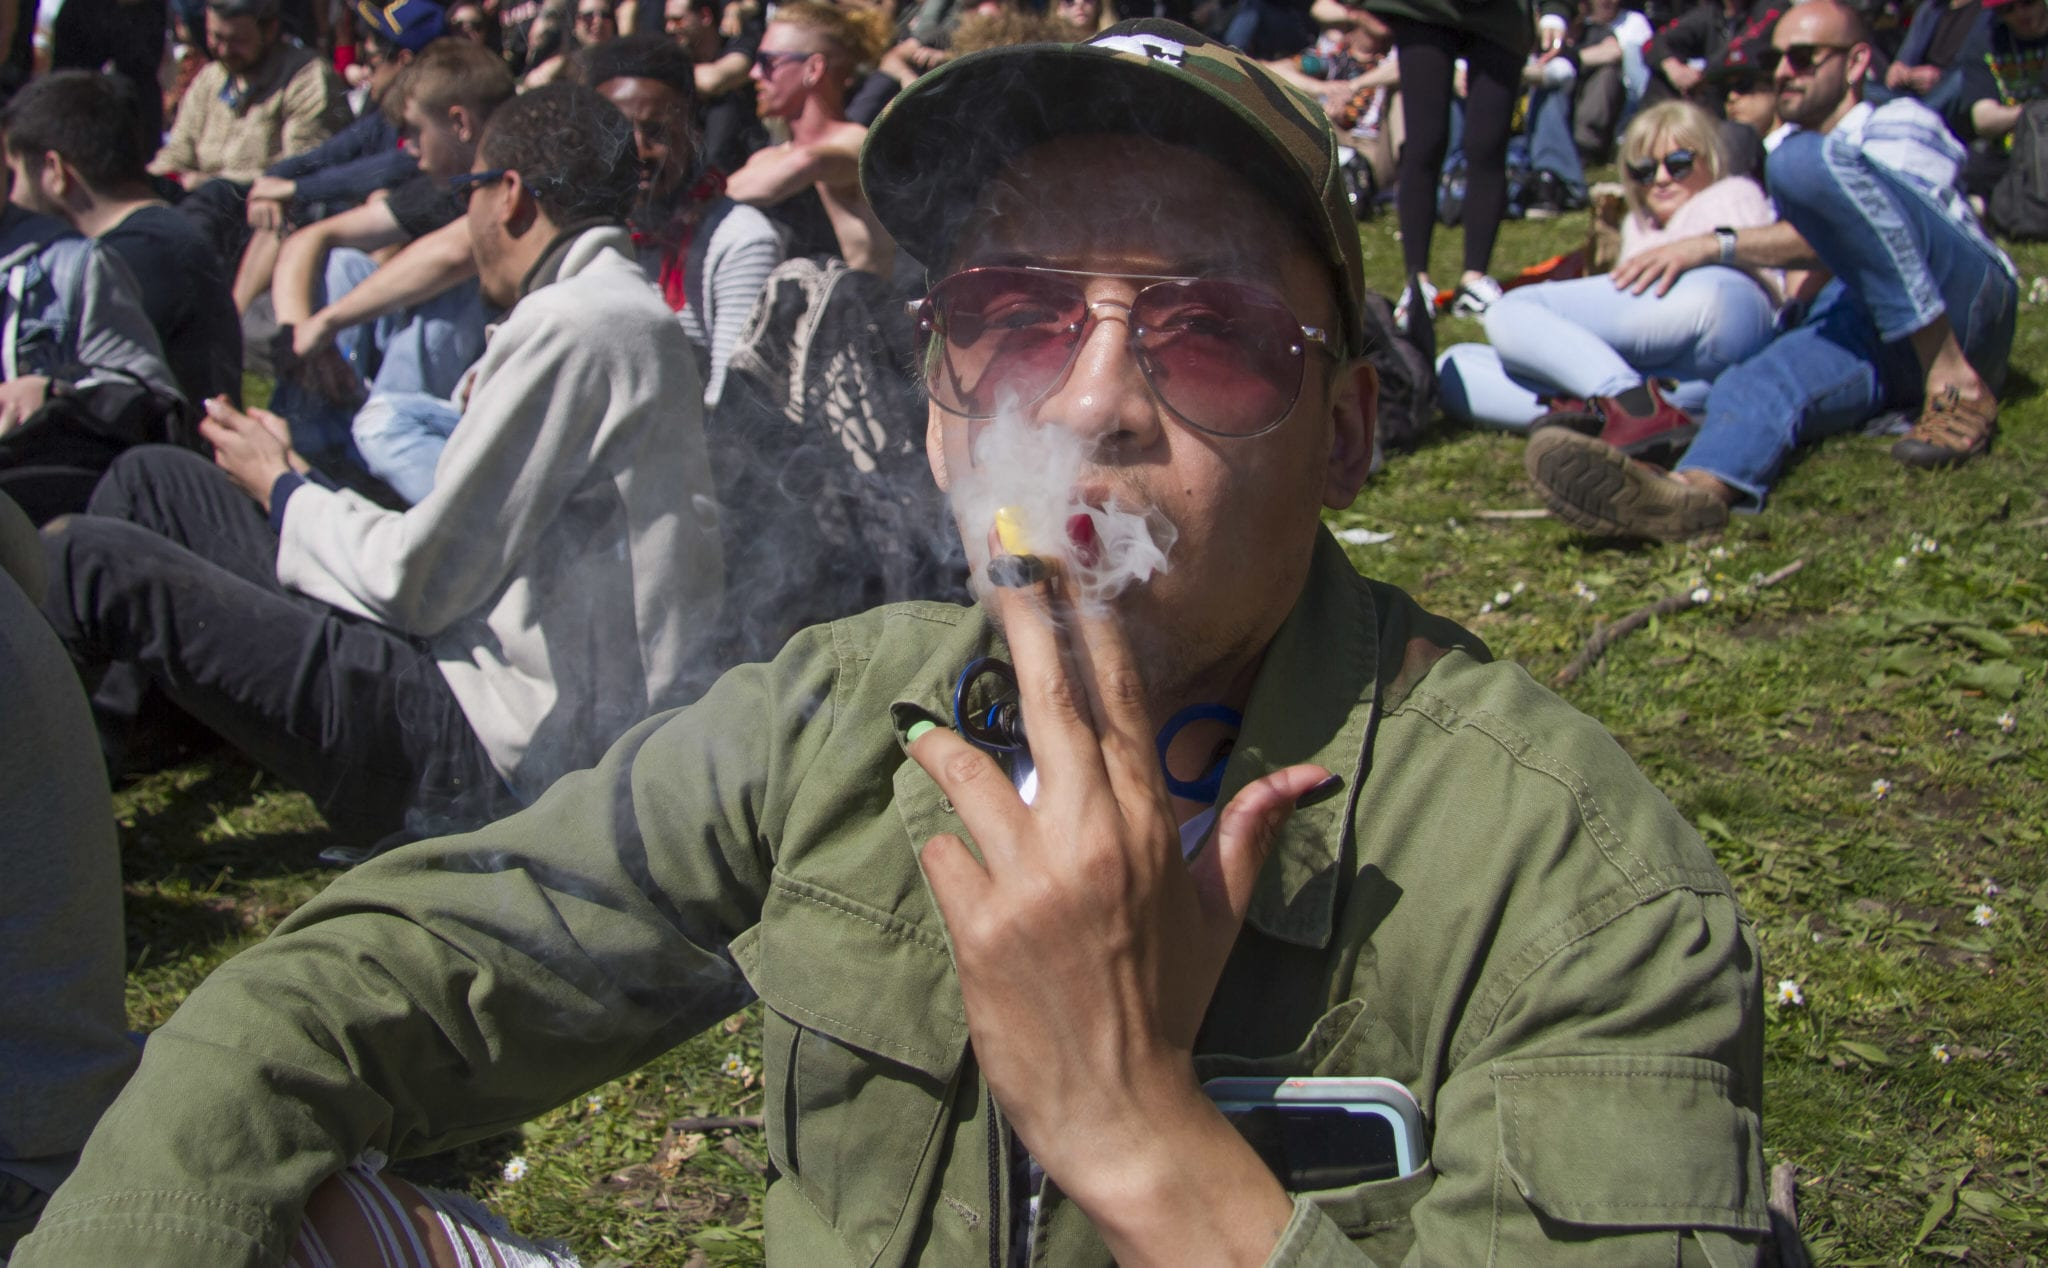 CANNABIS: Illinois' 500,000 cannabis expungements puts Canada to shame, lawyer says